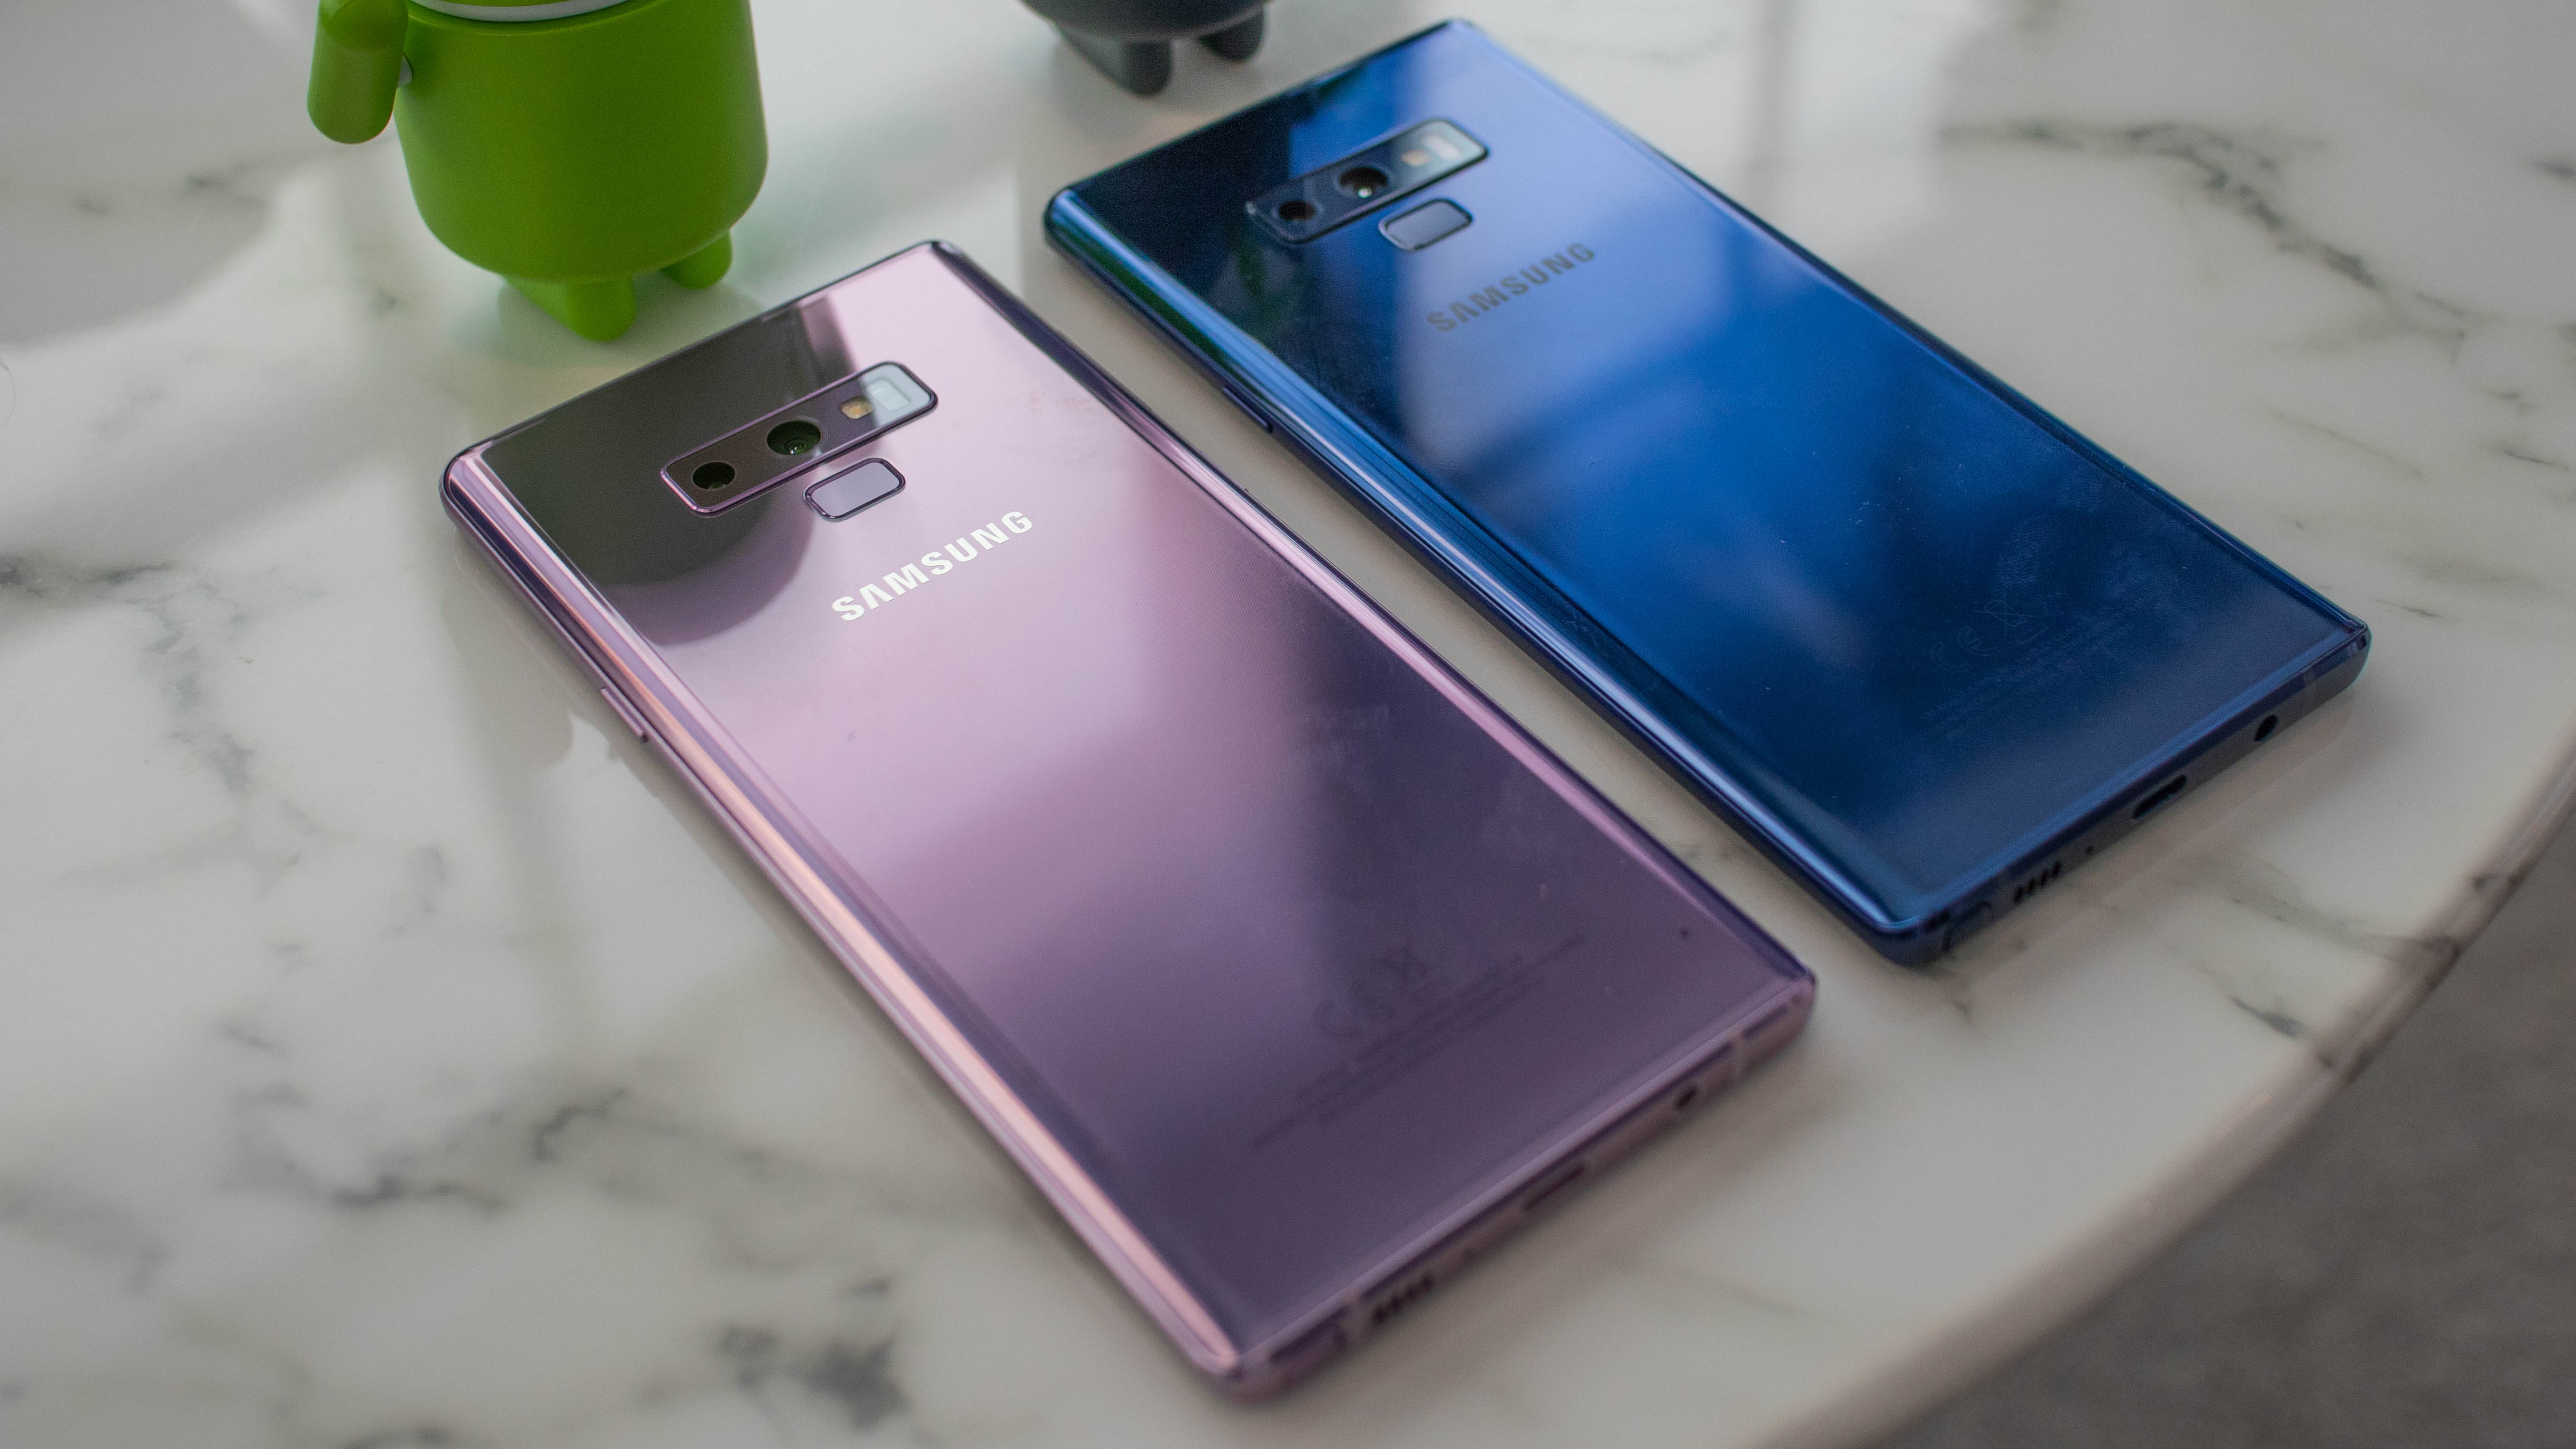 JDQMPUaUcnnTjhugTWrmzi - Samsung Galaxy Note 10 release date, price, news and leaks